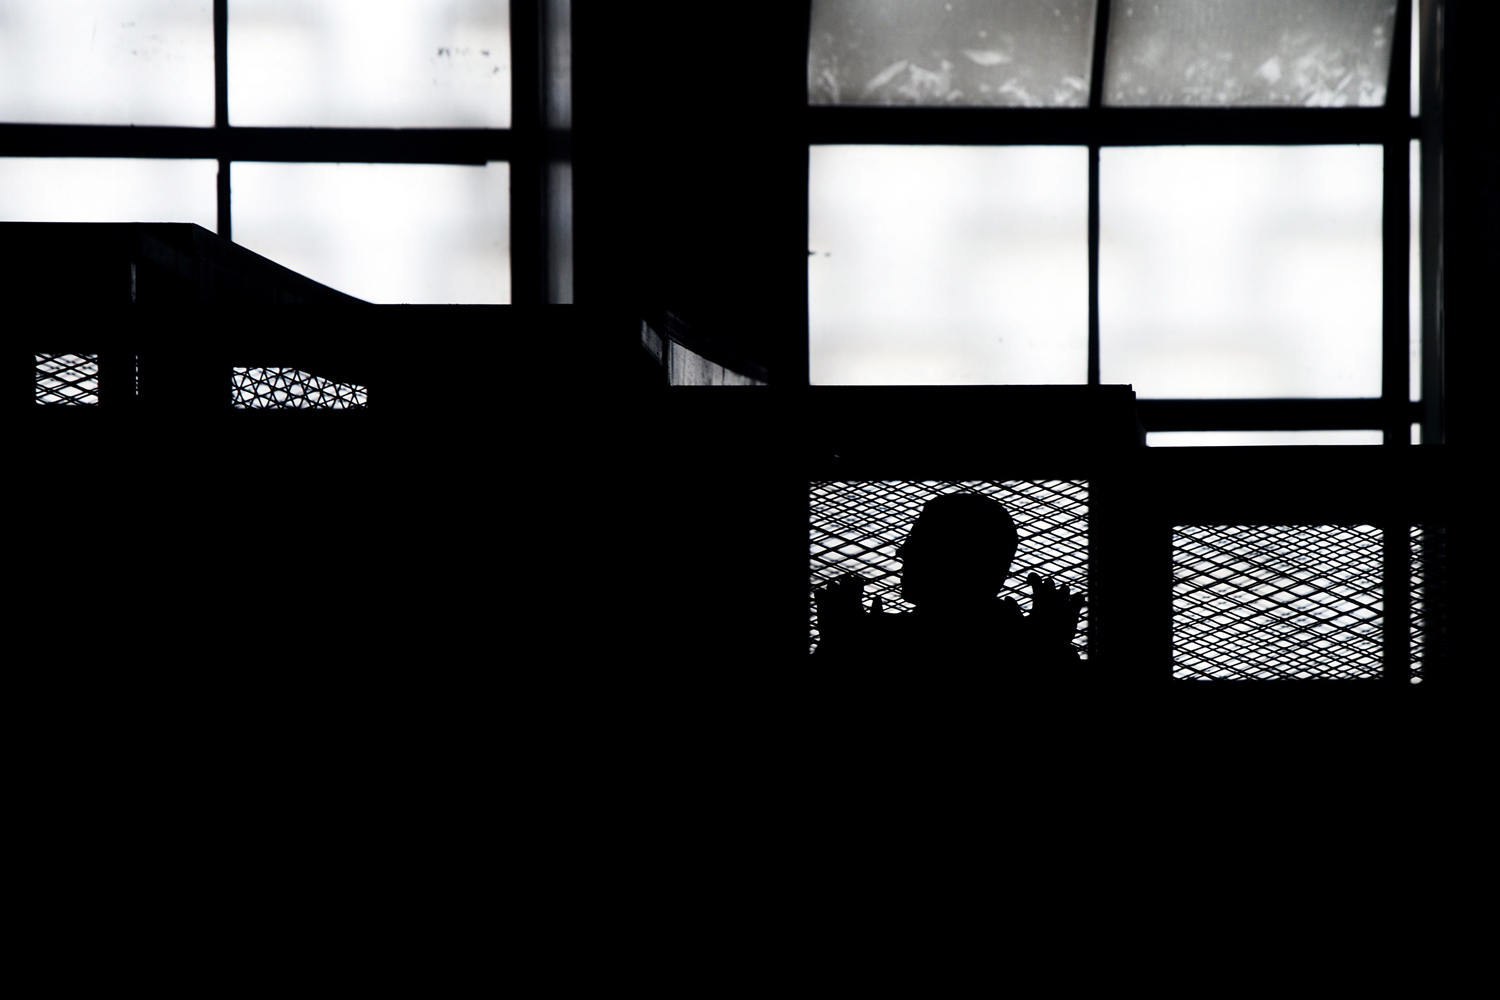 May 22, 2014. An Al-Jazeera channel's journalist stands inside the defendants cage with his colleagues during their trial for allegedly supporting the Muslim Brotherhood at Cairo's Tora prison, Egypt.